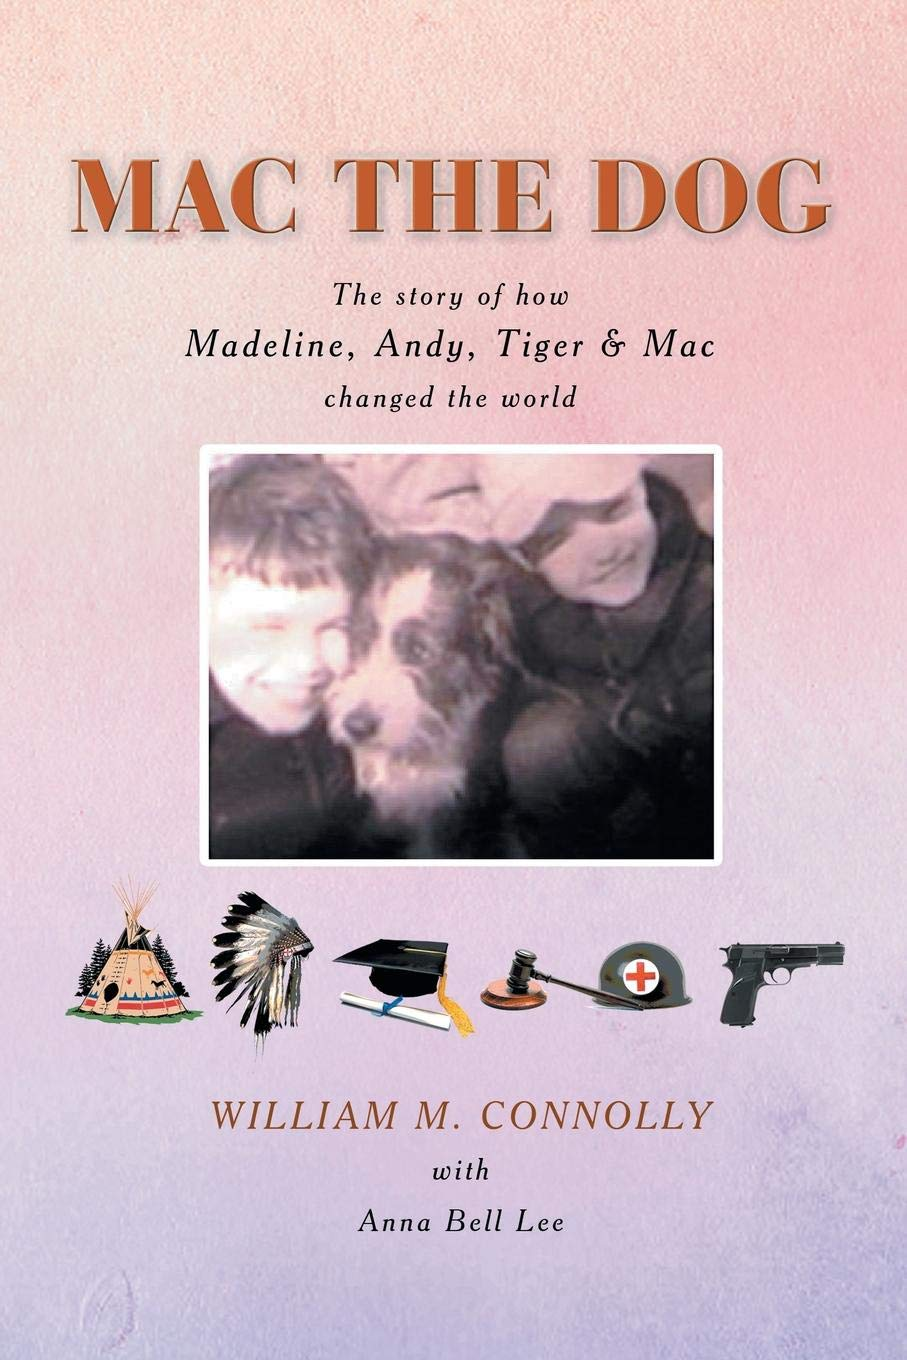 MAC THE DOG : The story of how Madeline, Andy, Tiger & Mac changed the world